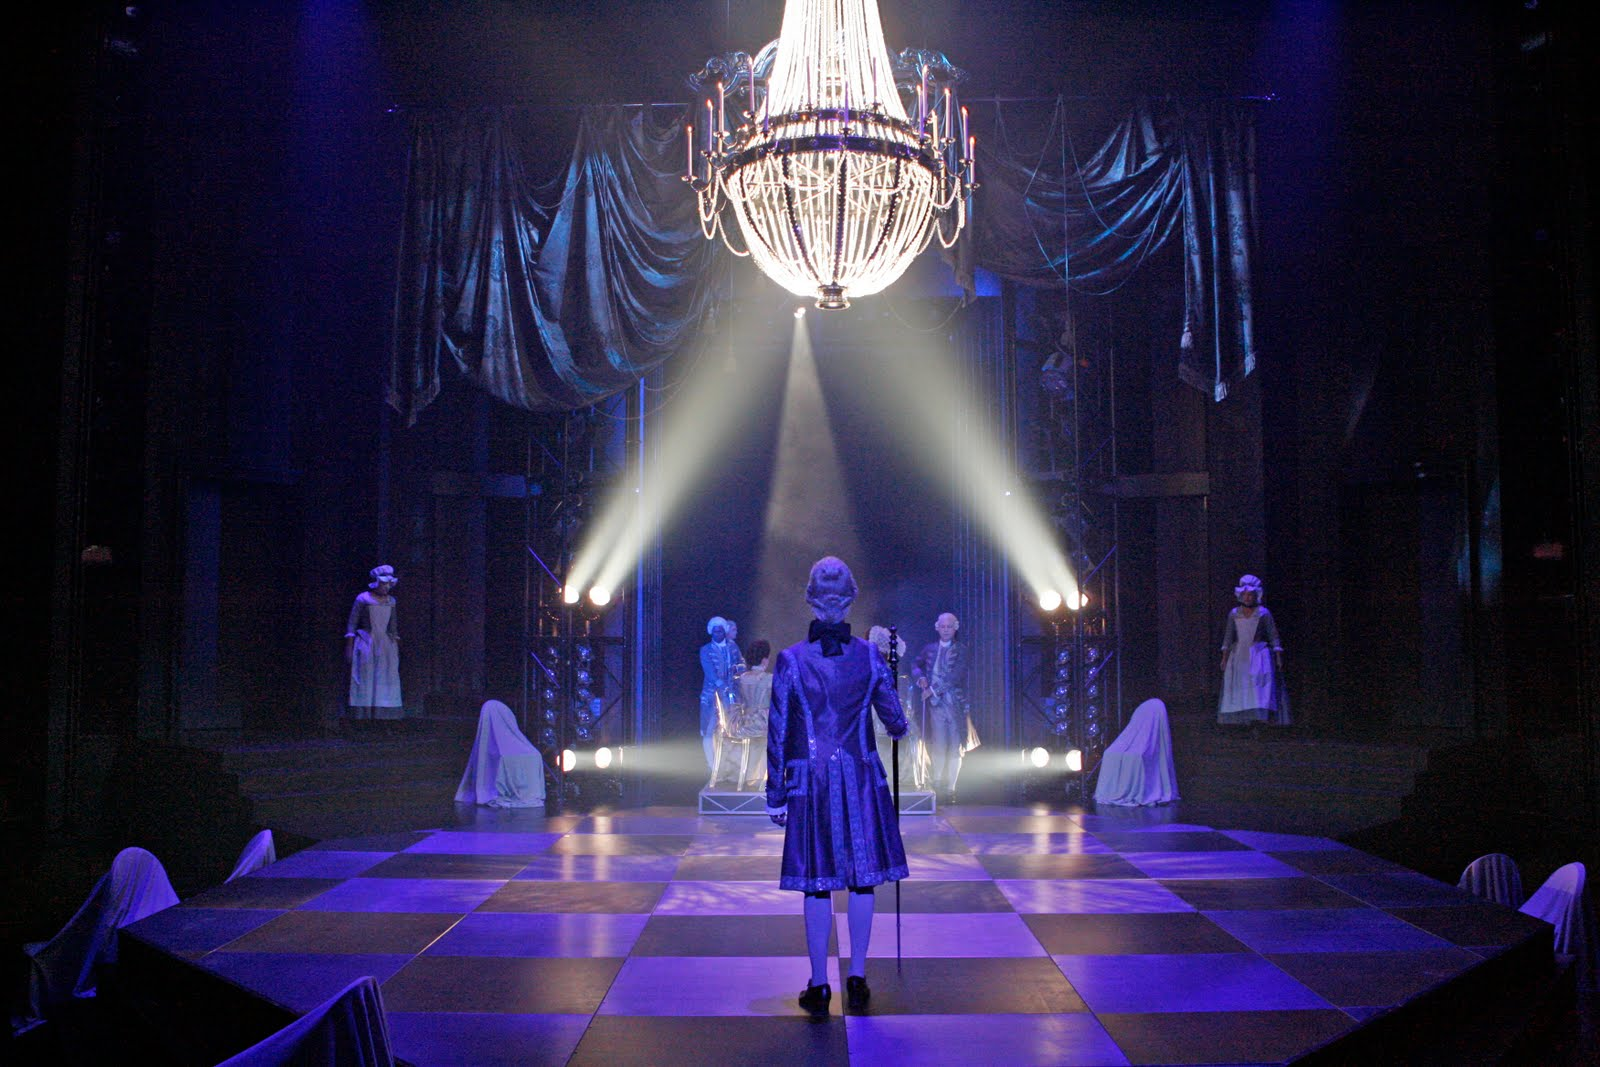 Man in powdered wig and ornate frock coat stands facing away on checker-board stage under spot lit chandelier.